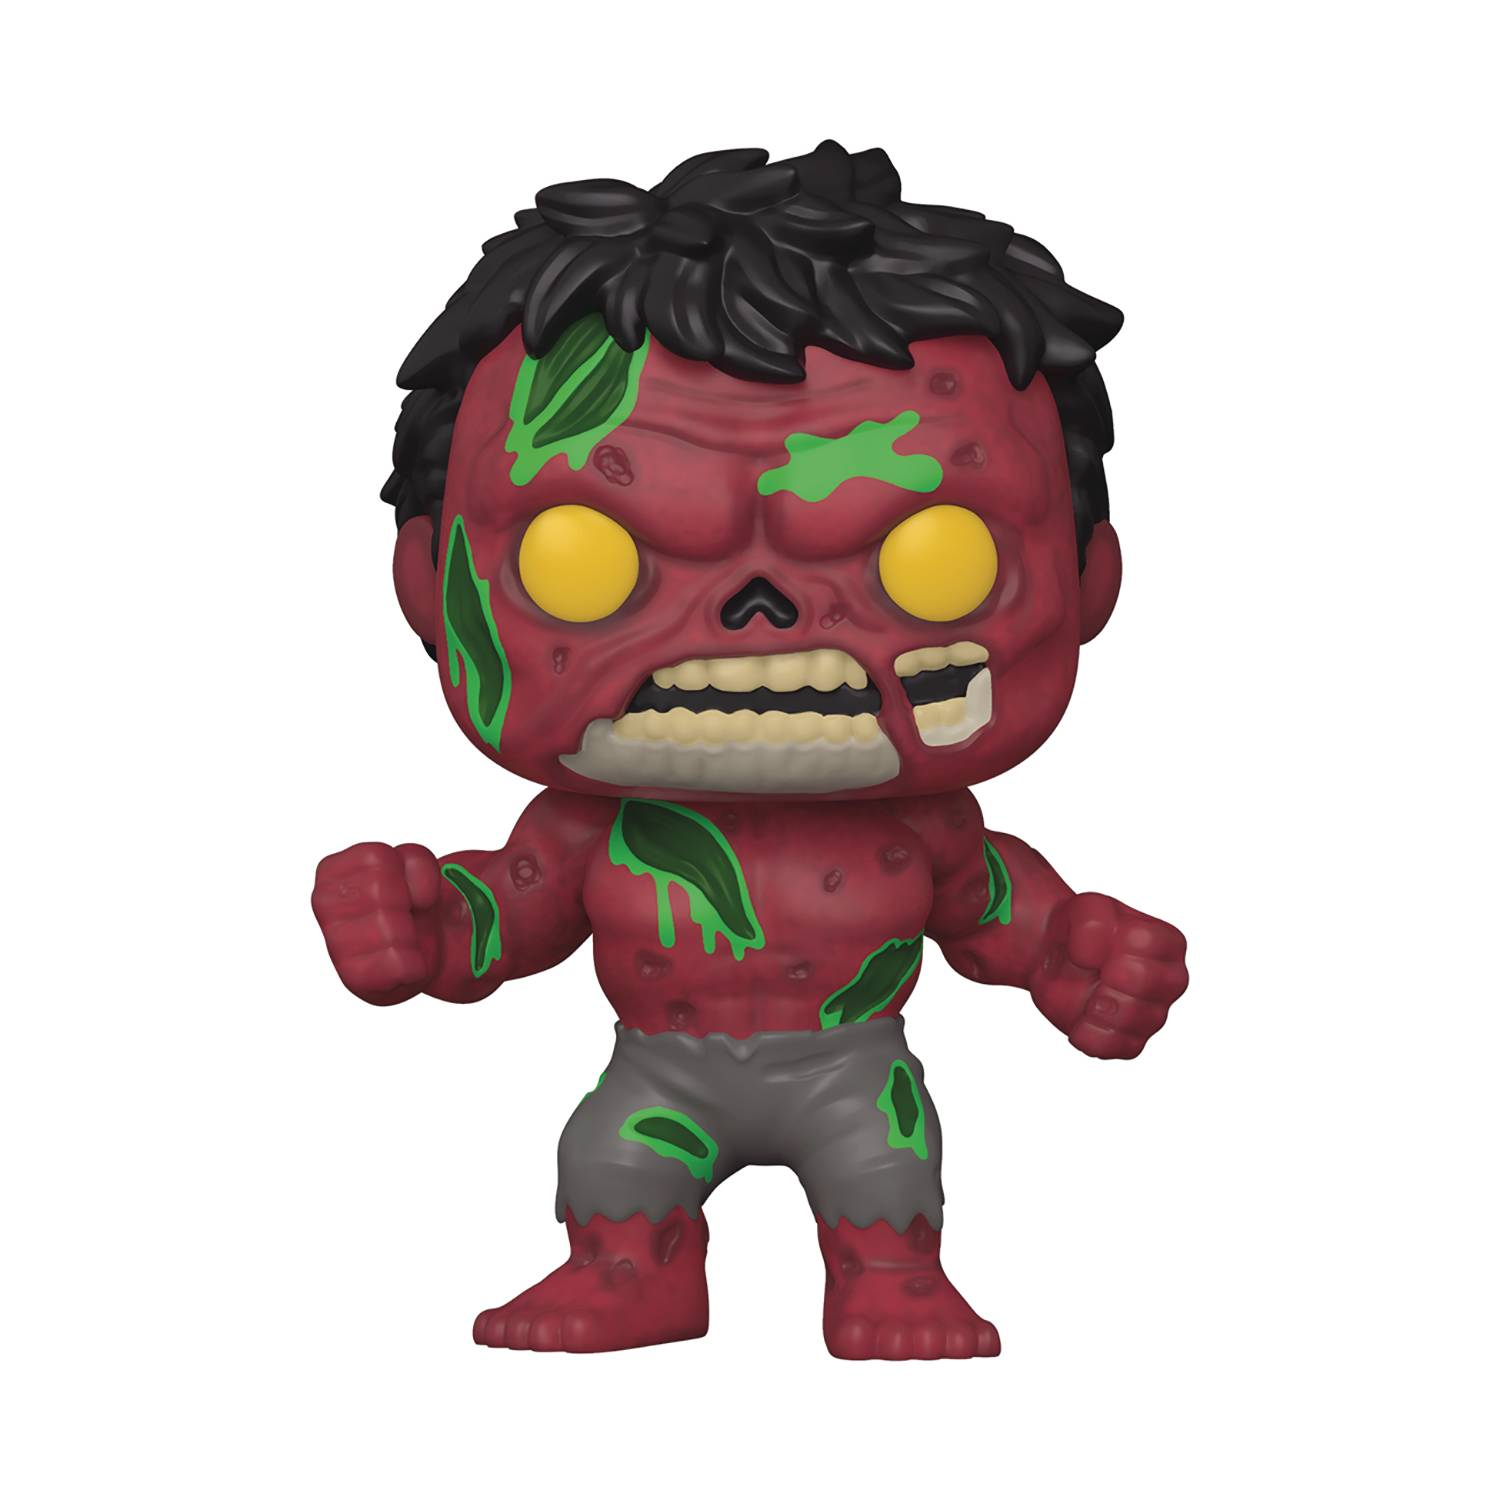 POP MARVEL ZOMBIES RED HULK VINYL FIG